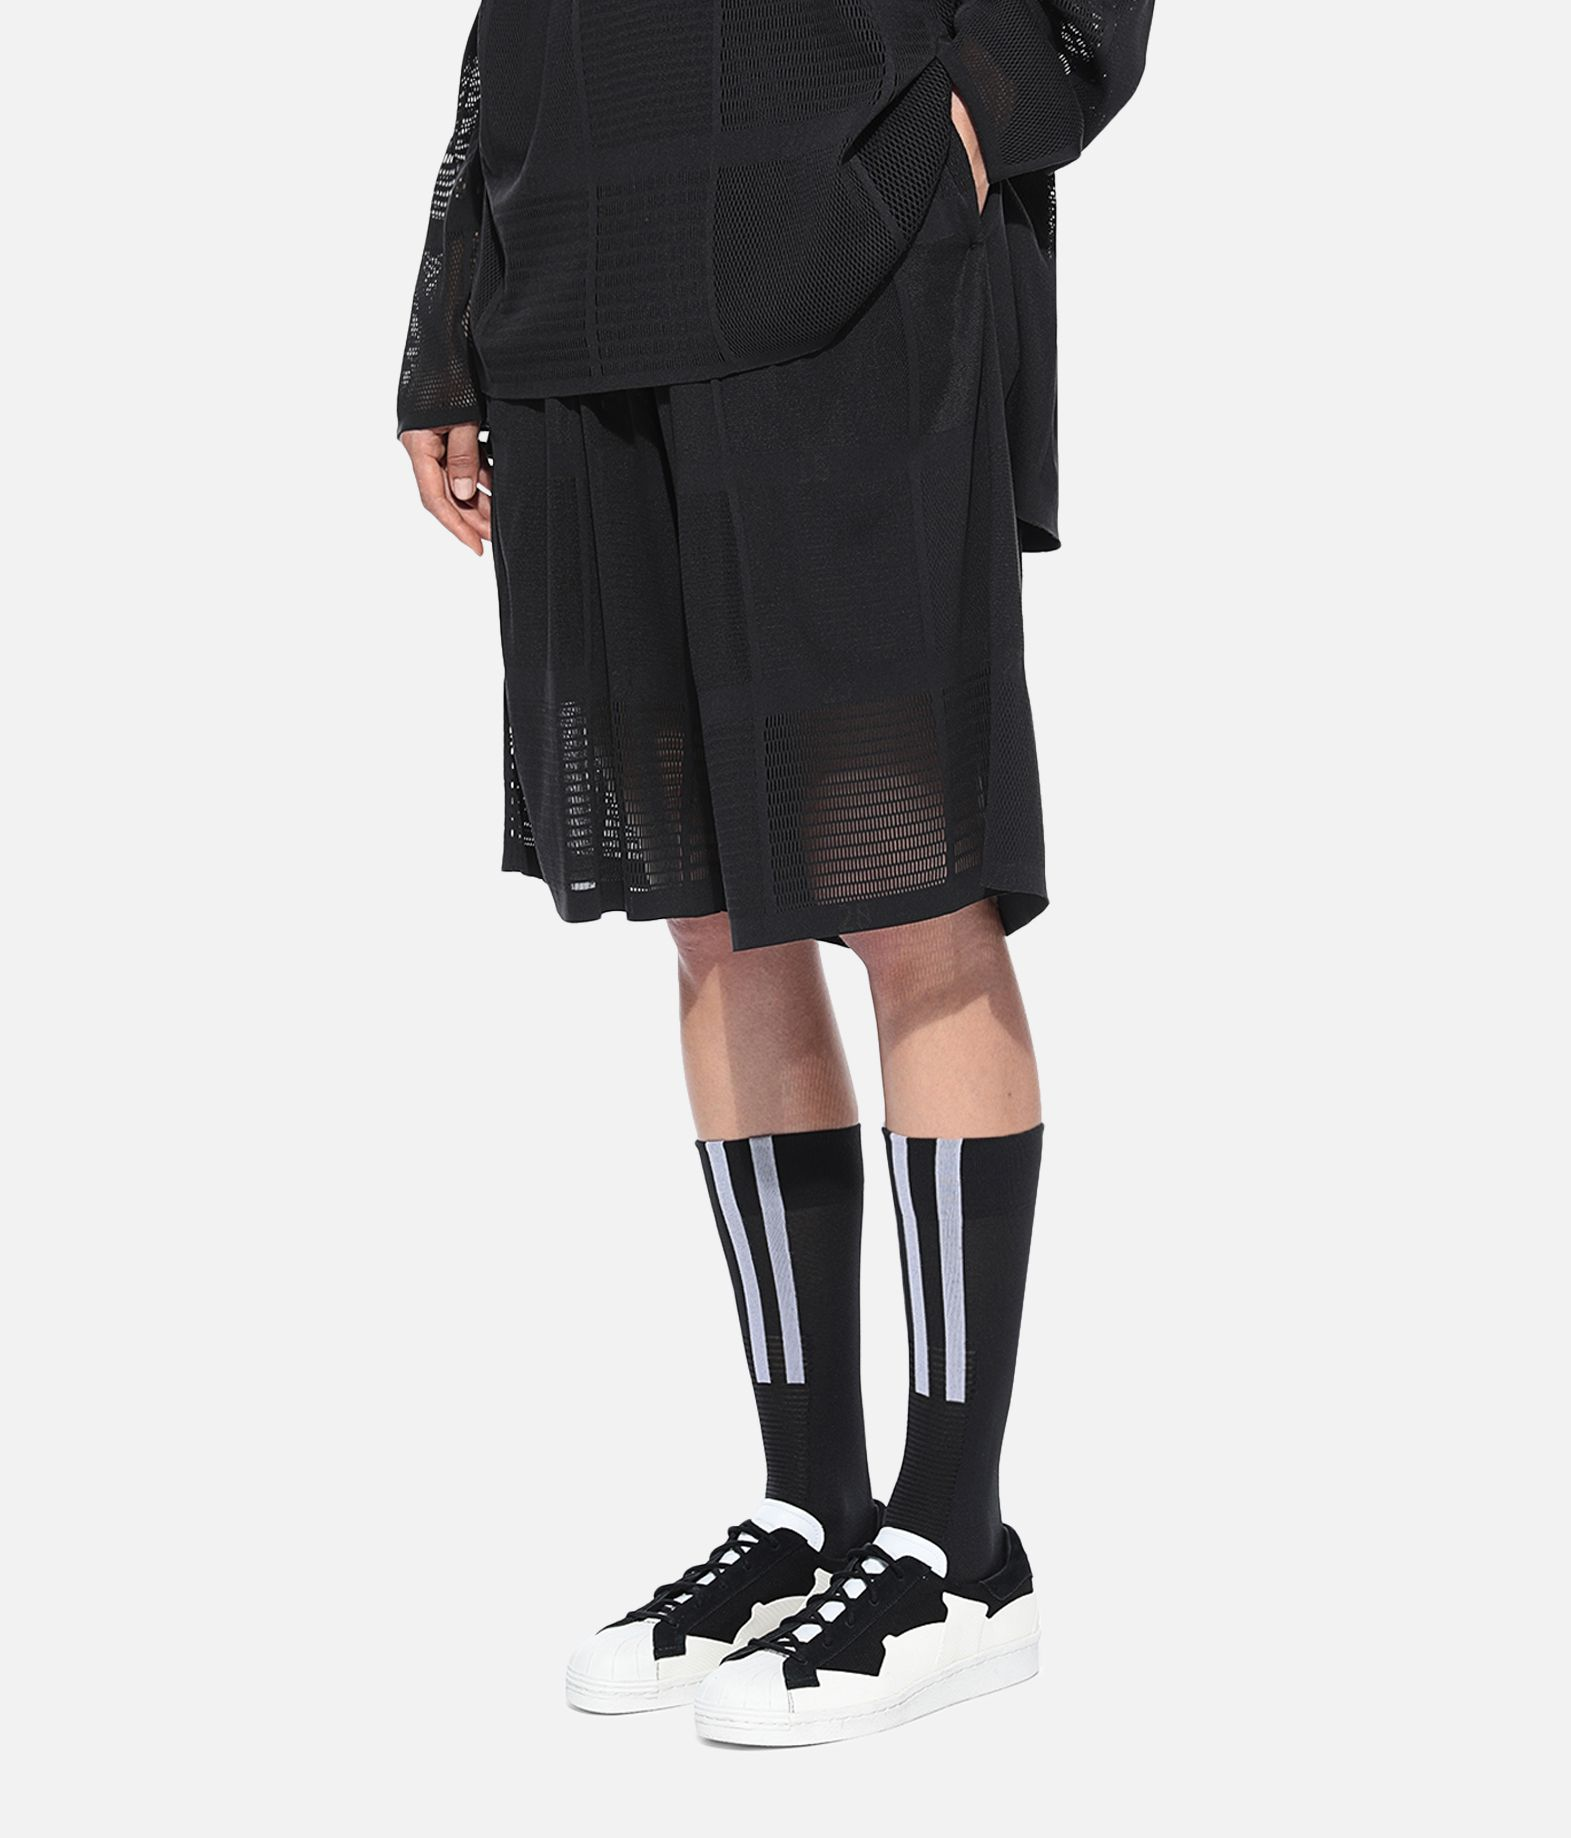 Y-3 Y-3 Patchwork Shorts Bermuda shorts Woman e